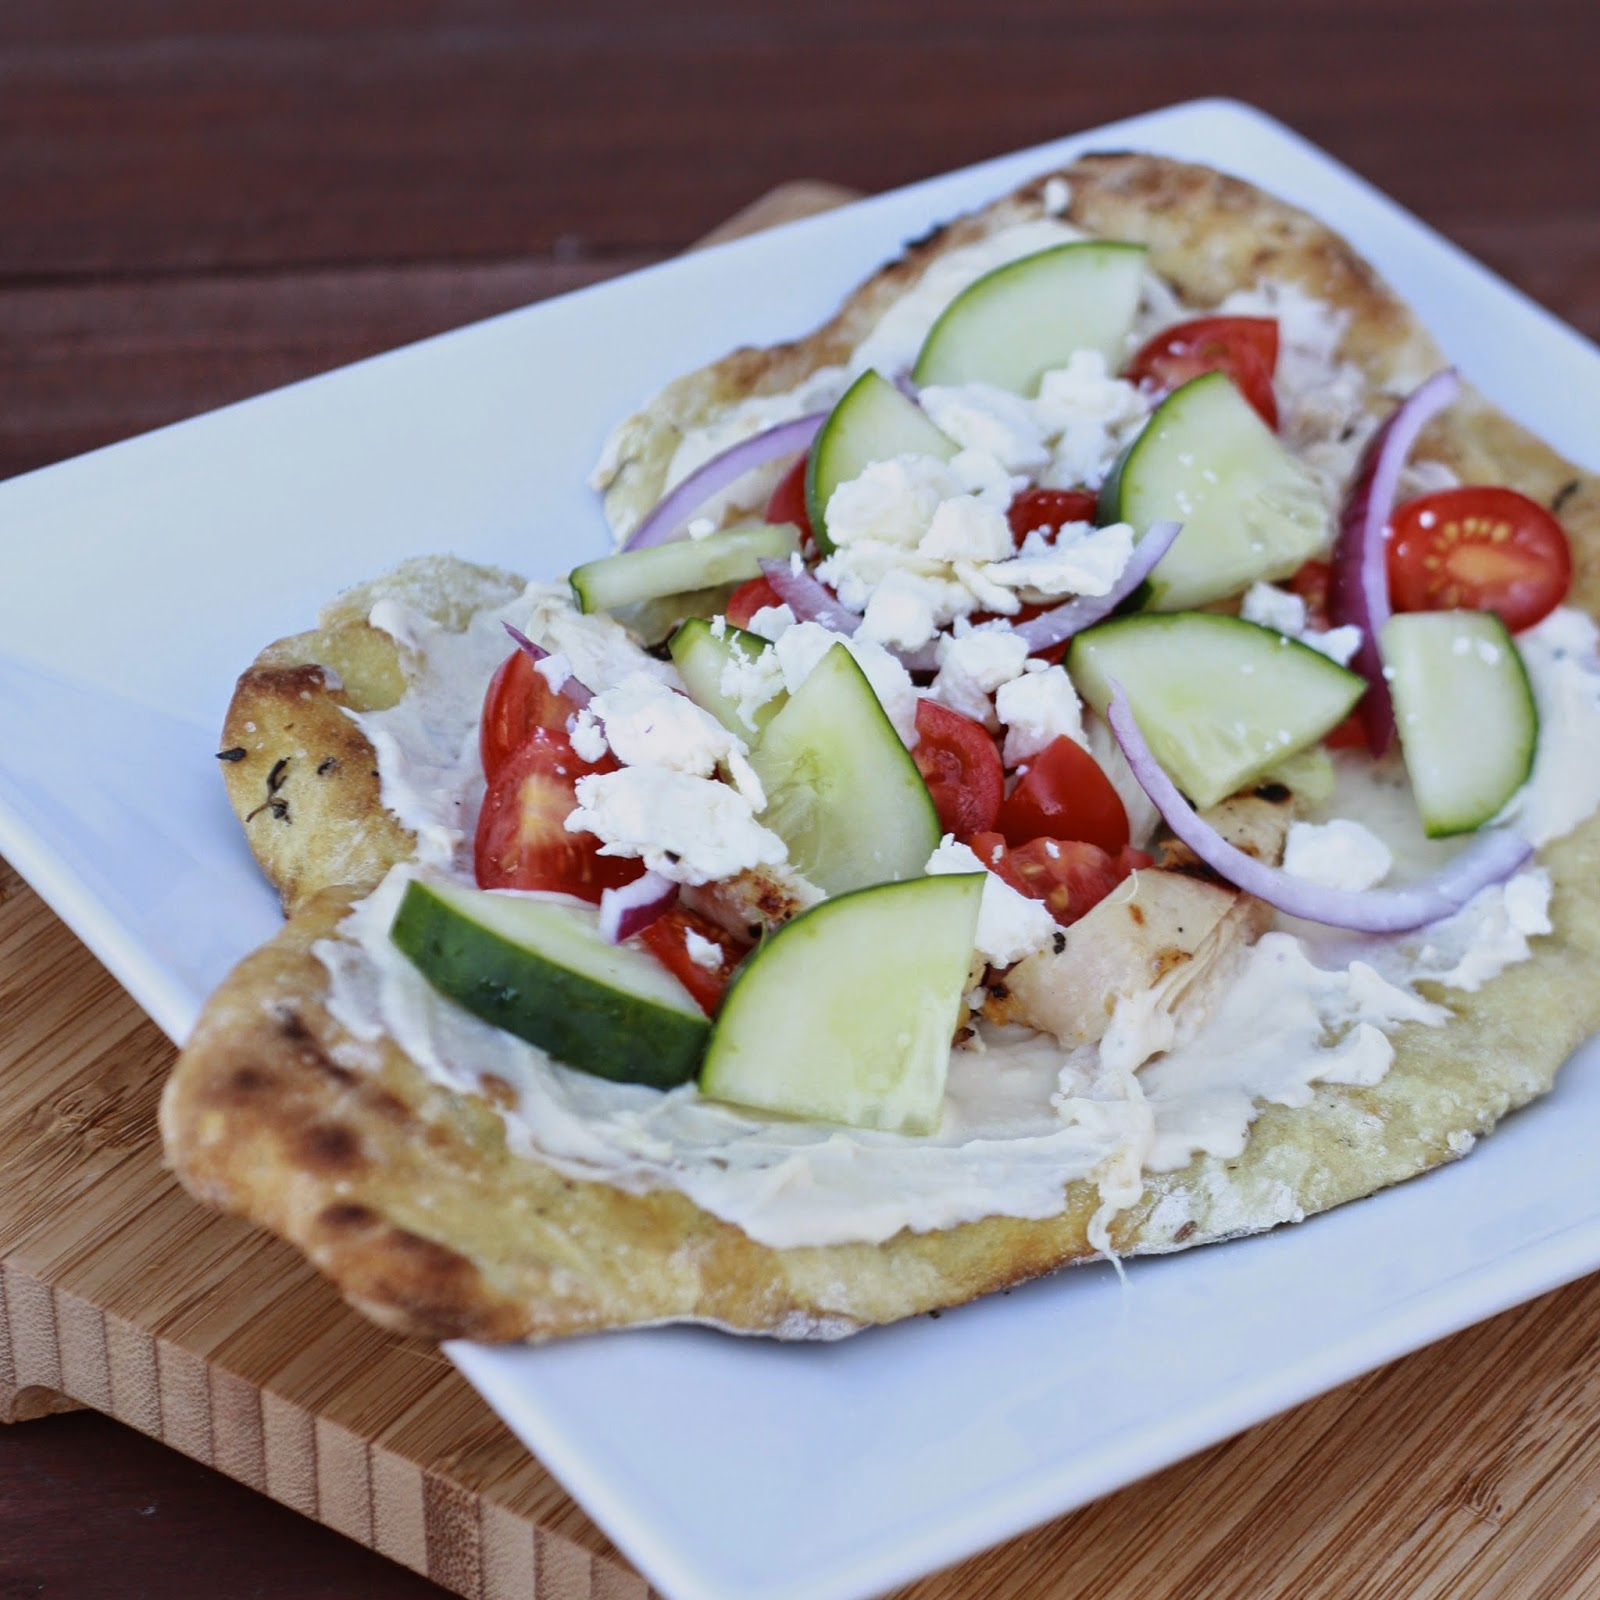 Grilled Chicken Flatbreads with Hummus and Feta | The Sweets Life